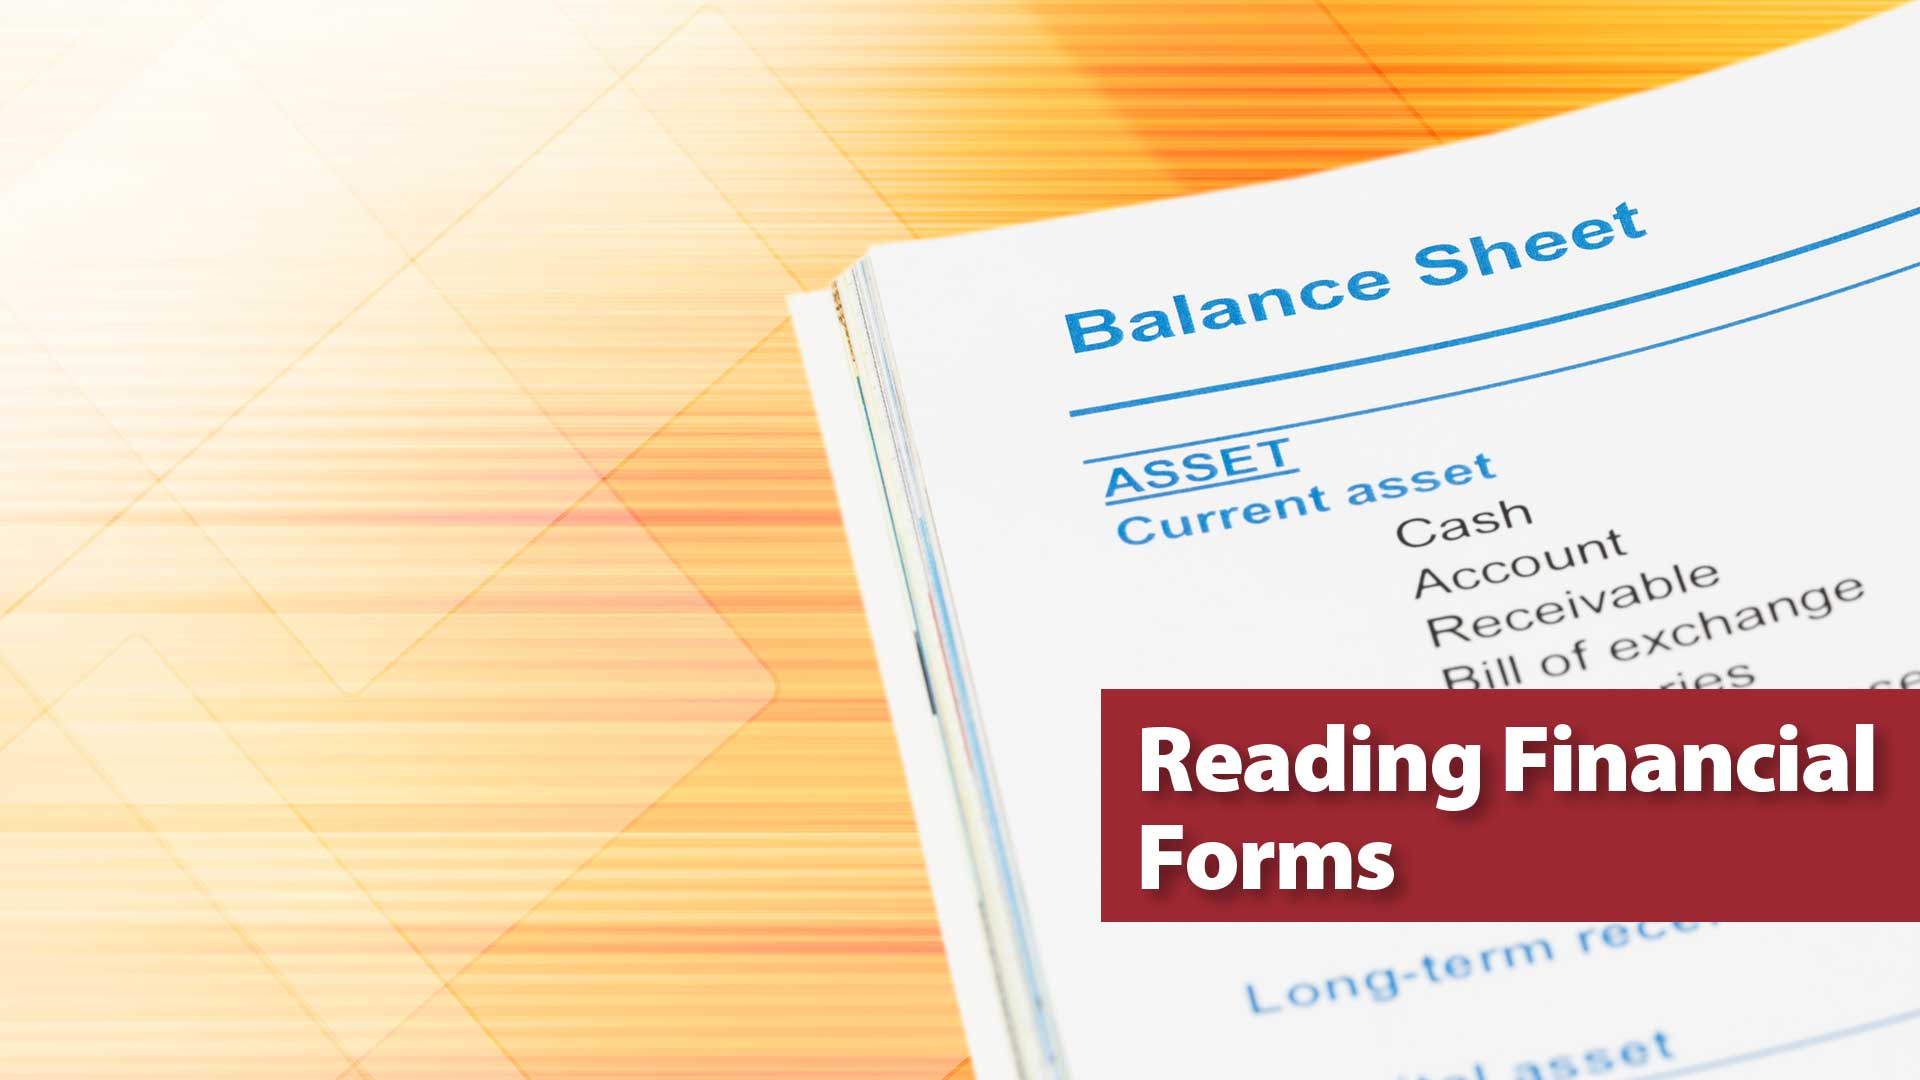 Reading Financial Forms